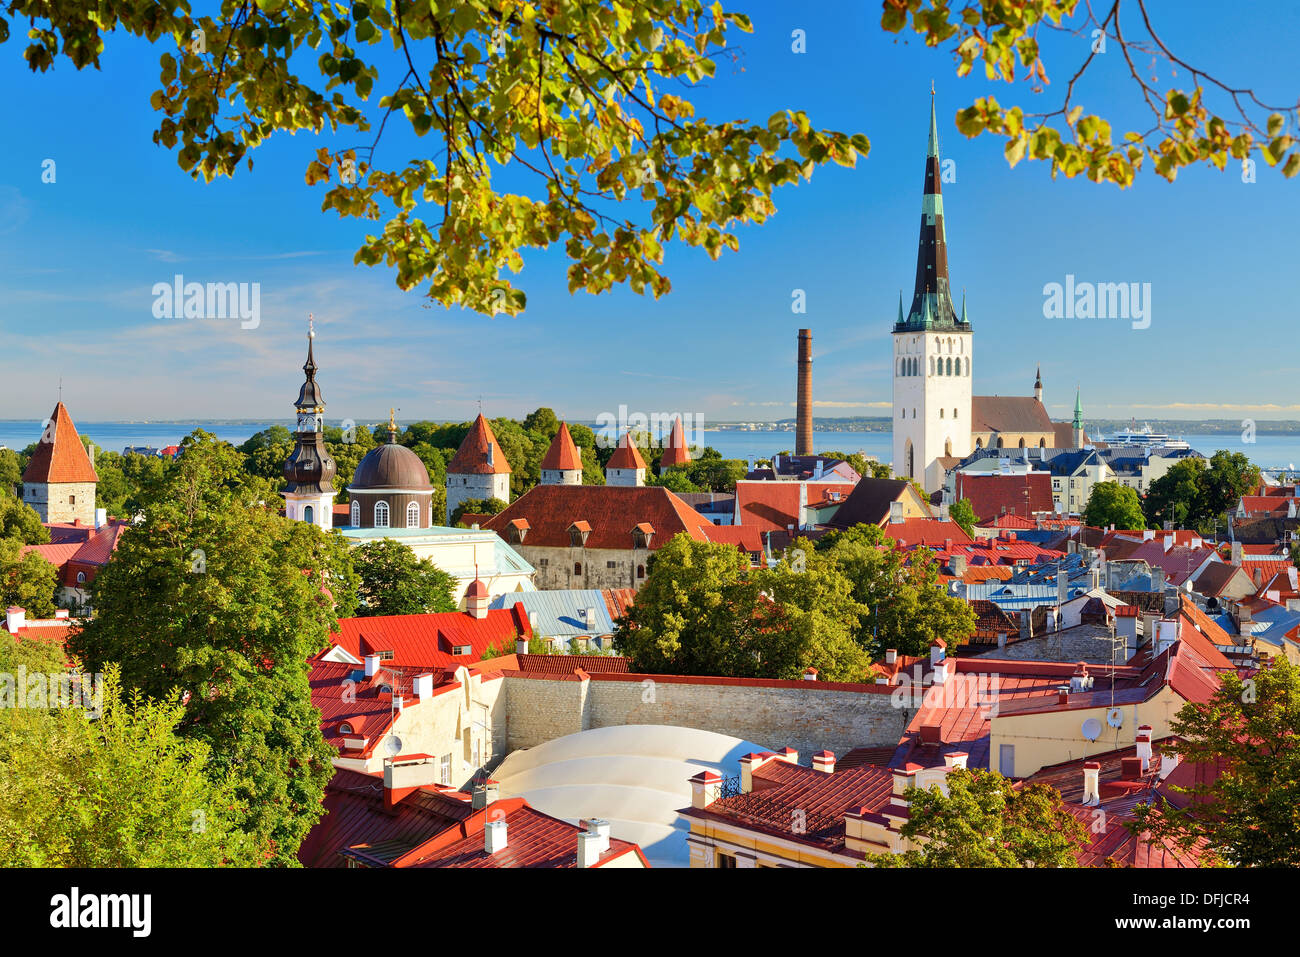 Skyline of Tallinn, Estonia at the old city. - Stock Image